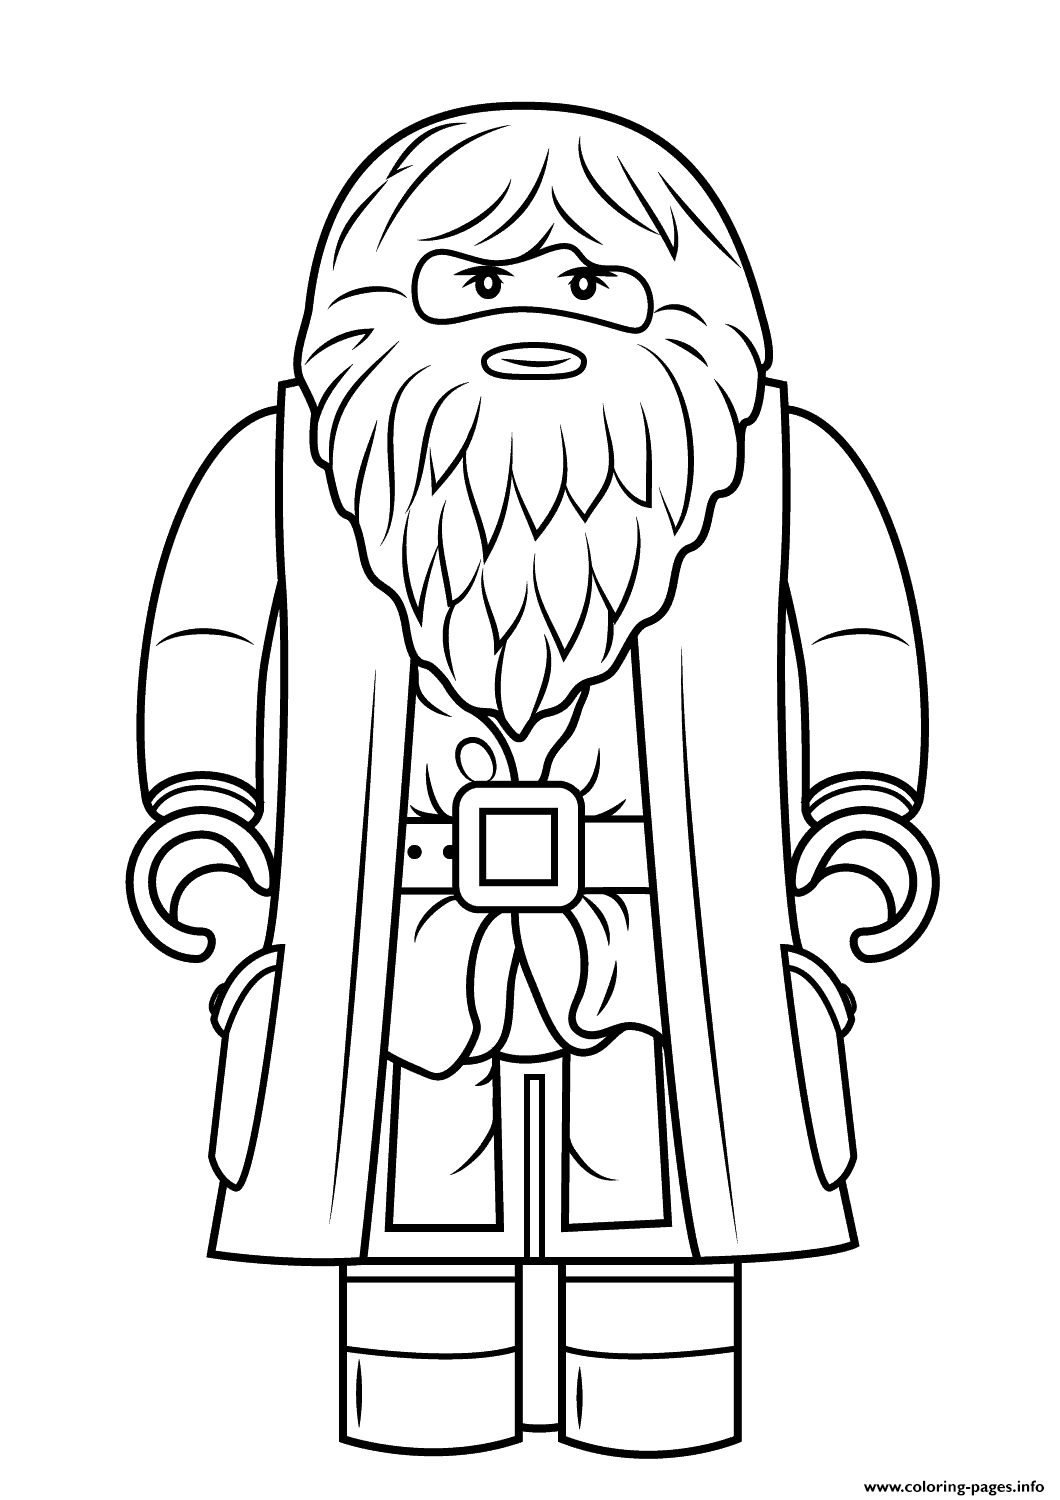 harry potter lego coloring pages lego harry potter coloring pages 1 coloring pages potter harry lego